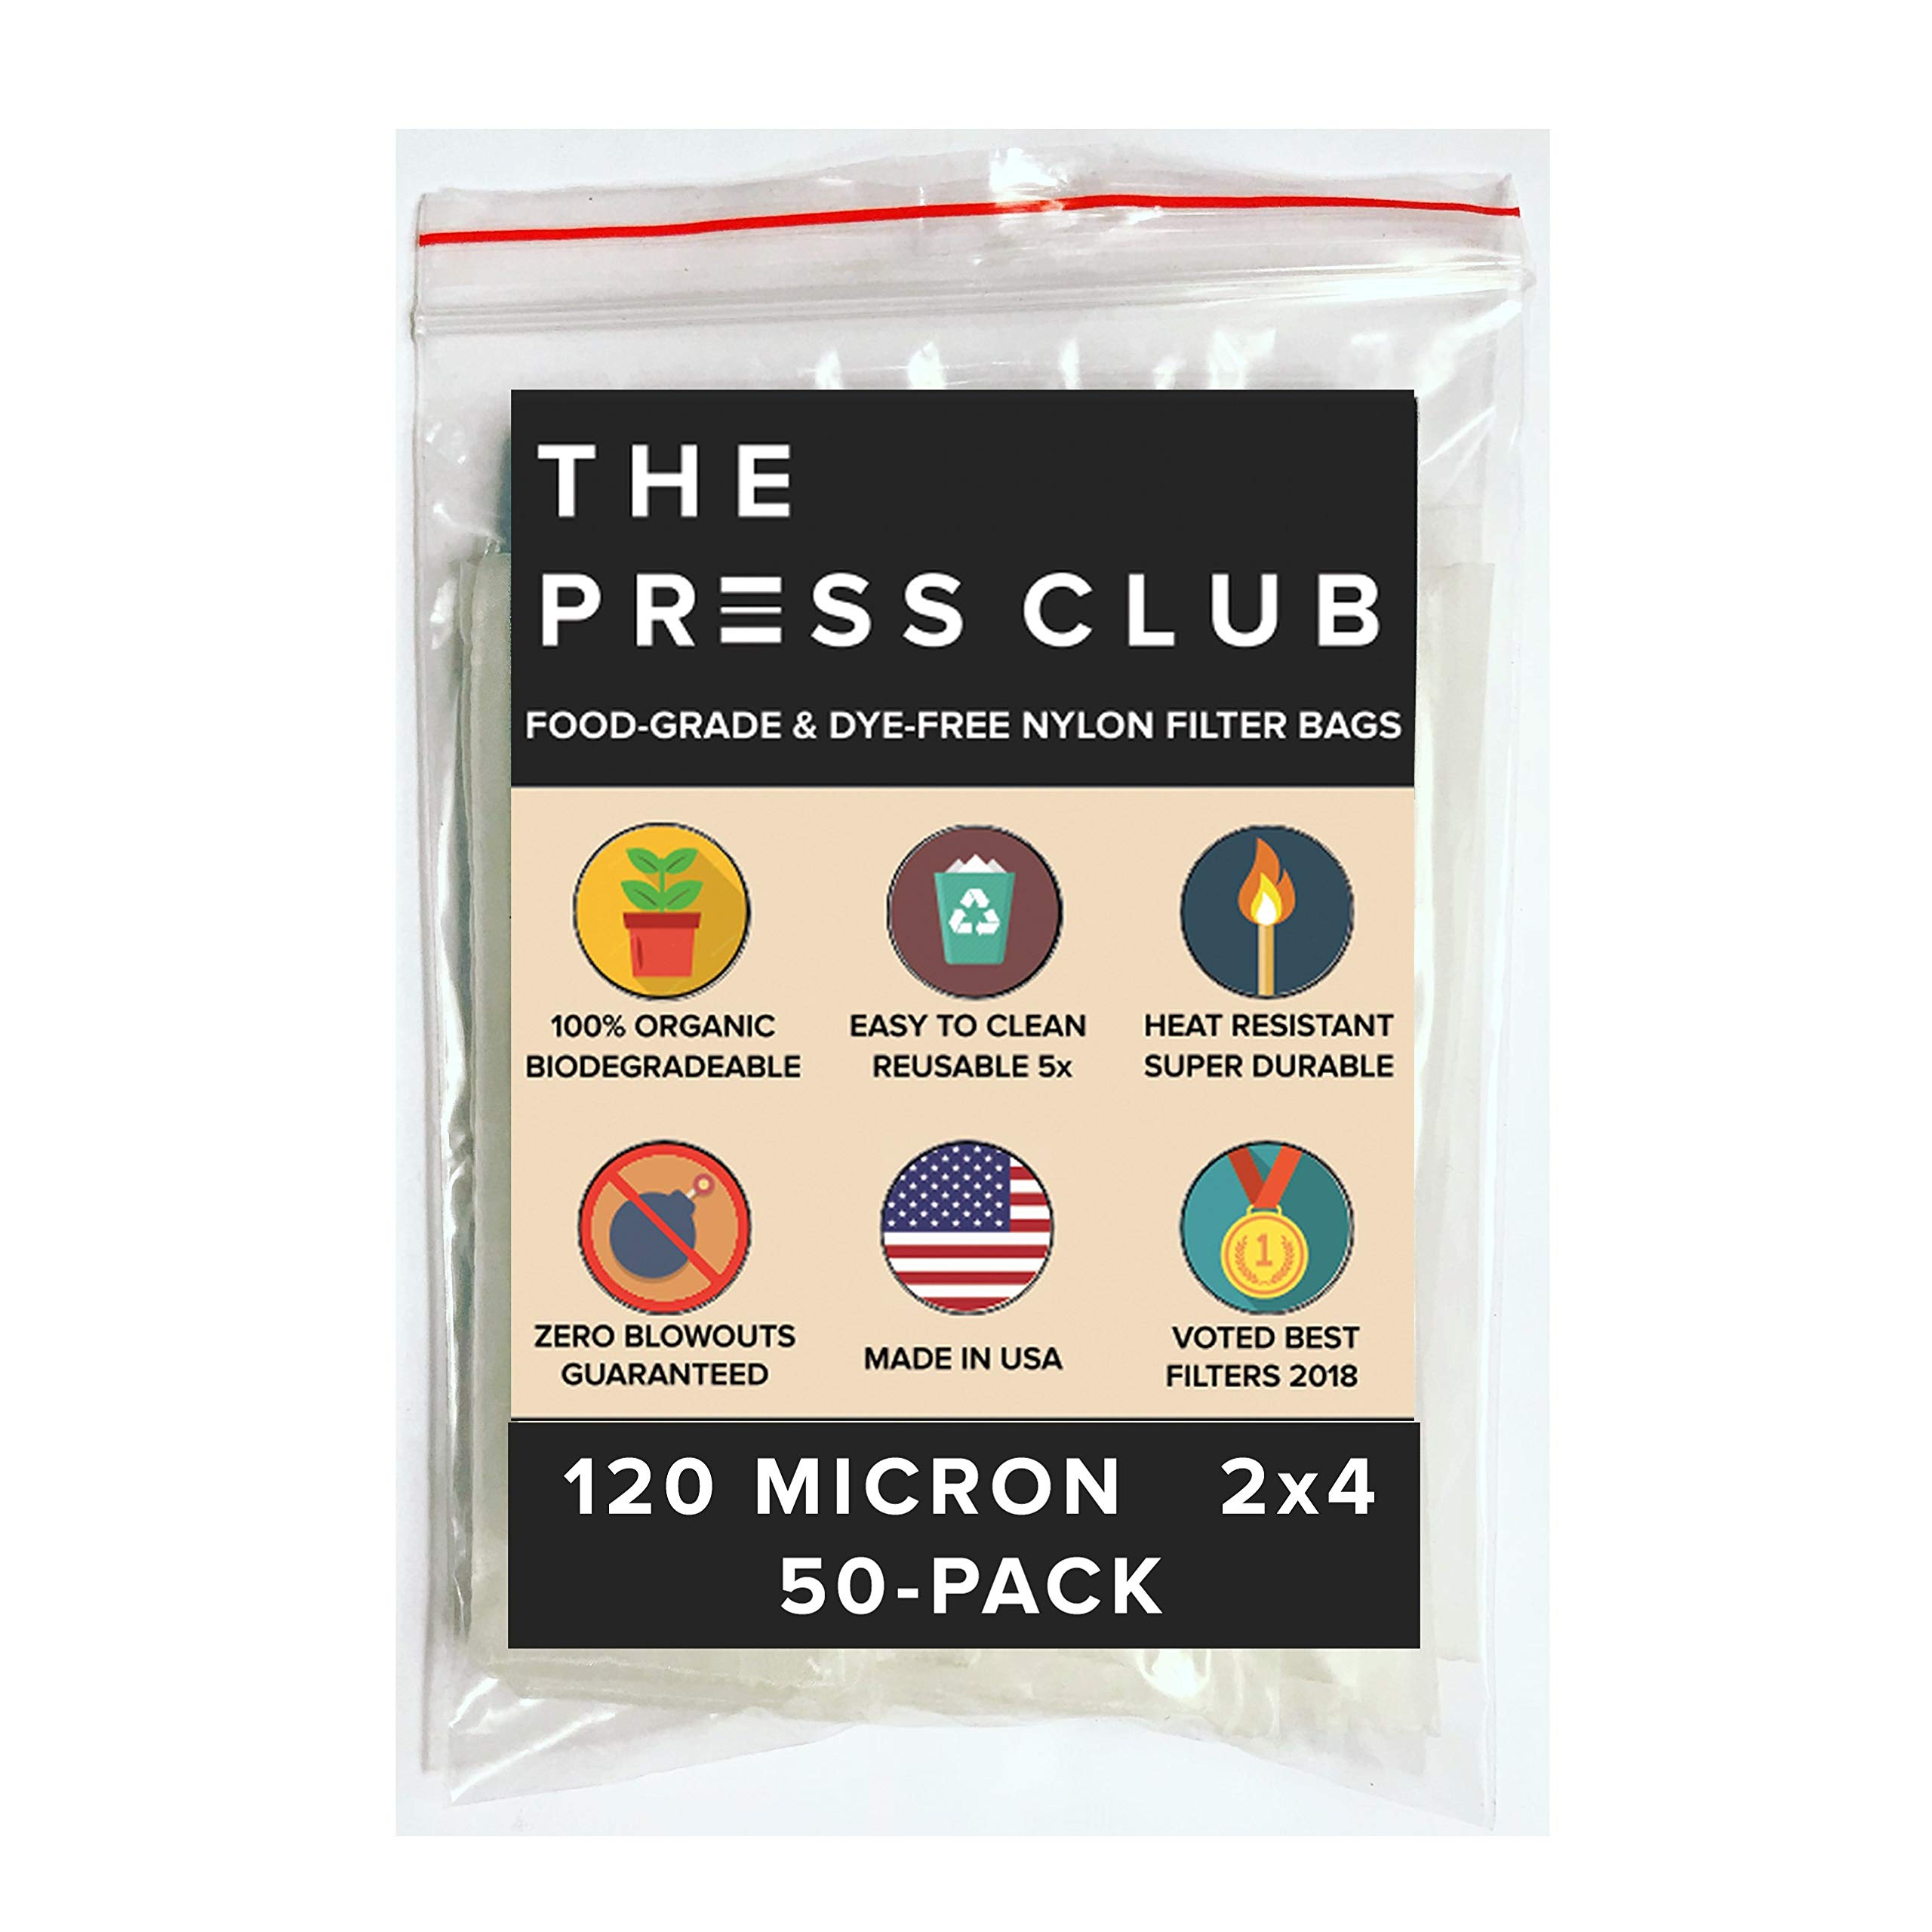 120 Micron | Premium Nylon Tea Filter Press Screen Bags | 2'' x 4'' | 50 Pack | Zero Blowout Guarantee | All Micron & Sizes Available by The Press Club